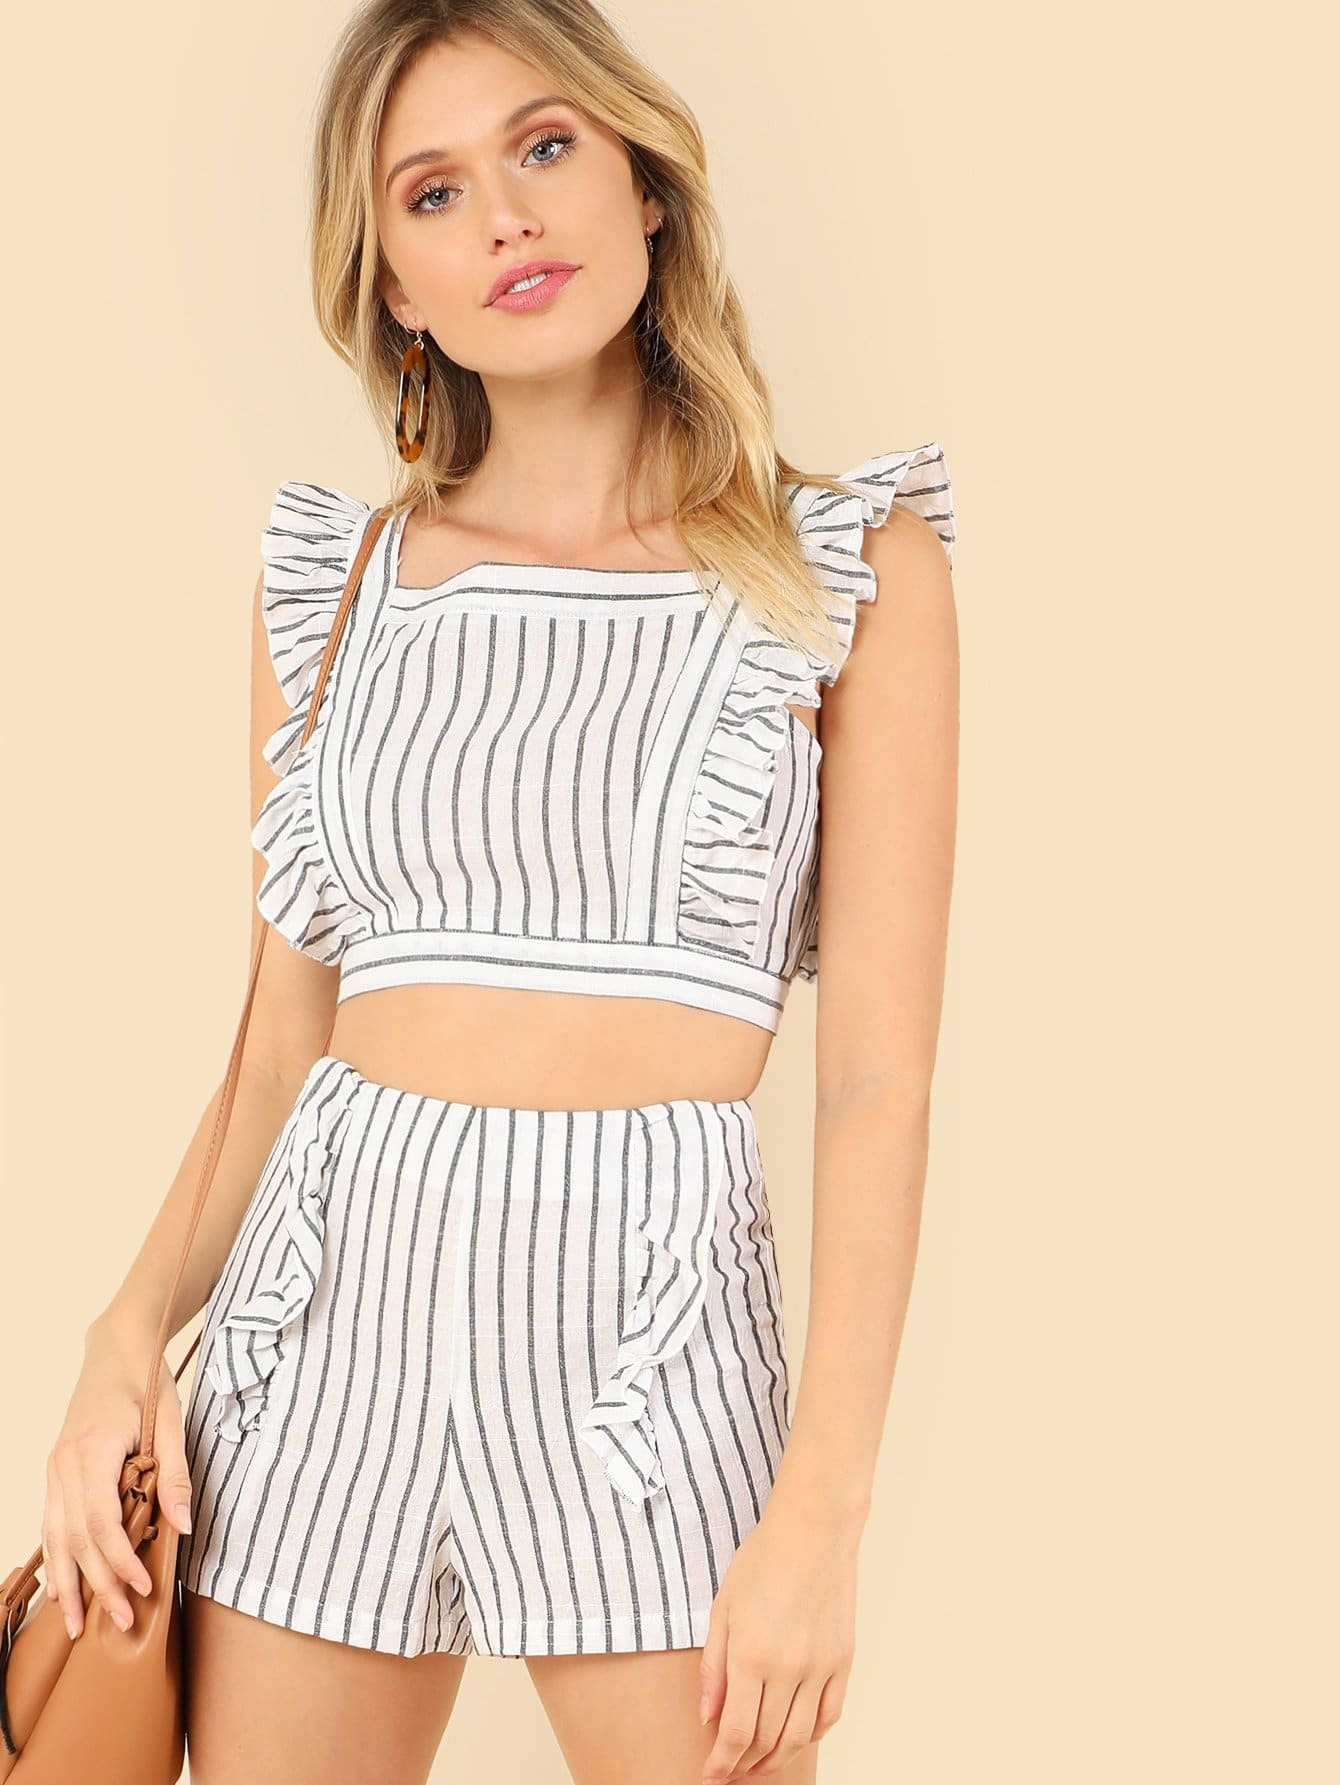 Ruffle Strap Crop Striped Top & Shorts Co-Ord jungle print crop tank top and pleated shorts co ord